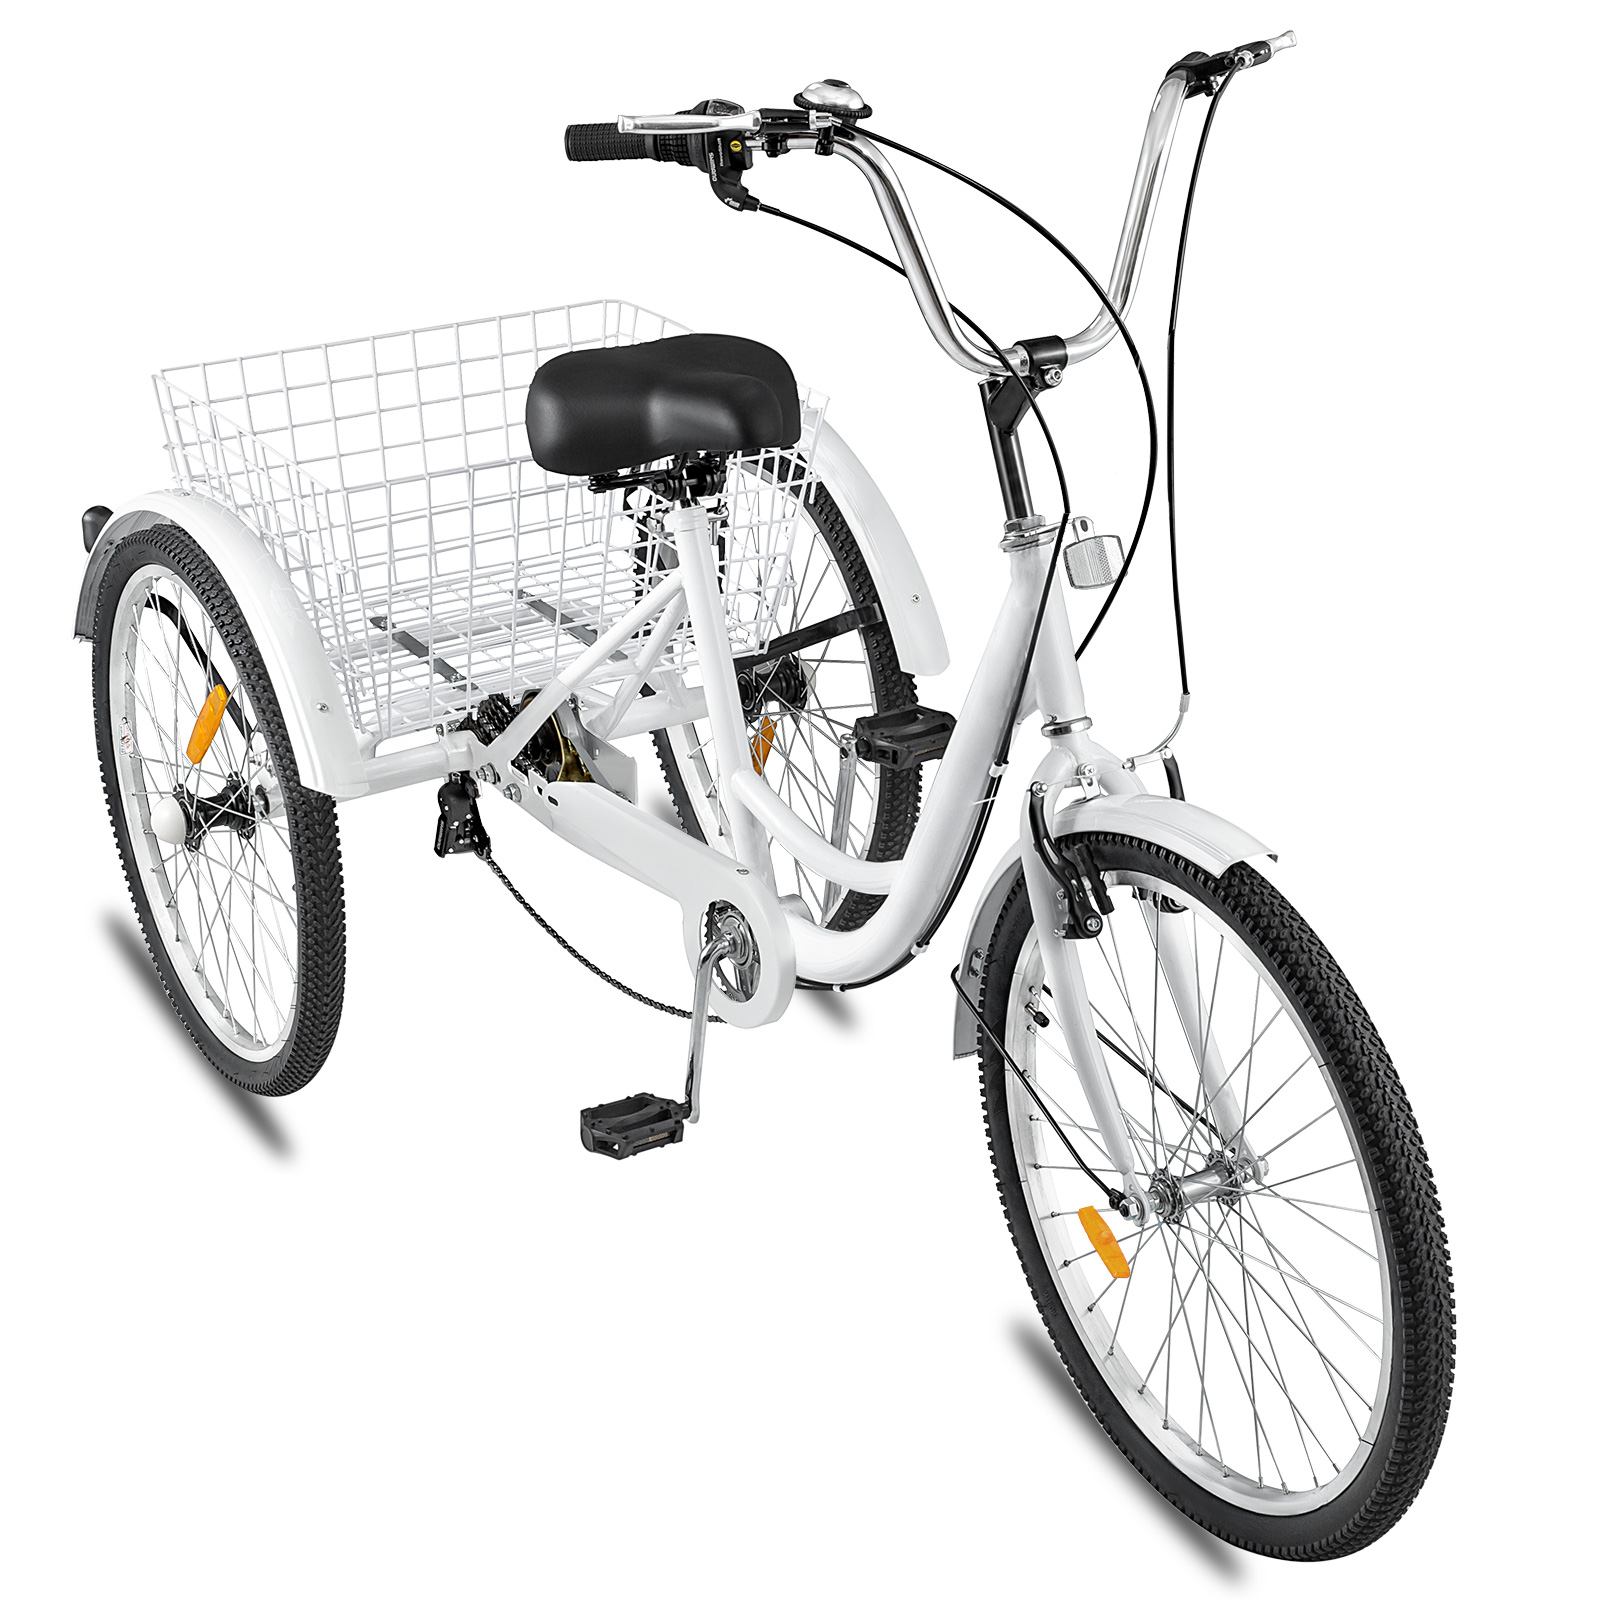 20-24-26-034-Adult-Tricycle-1-7-Speed-3-Wheel-Large-Basket-For-Shopping-Optional thumbnail 141